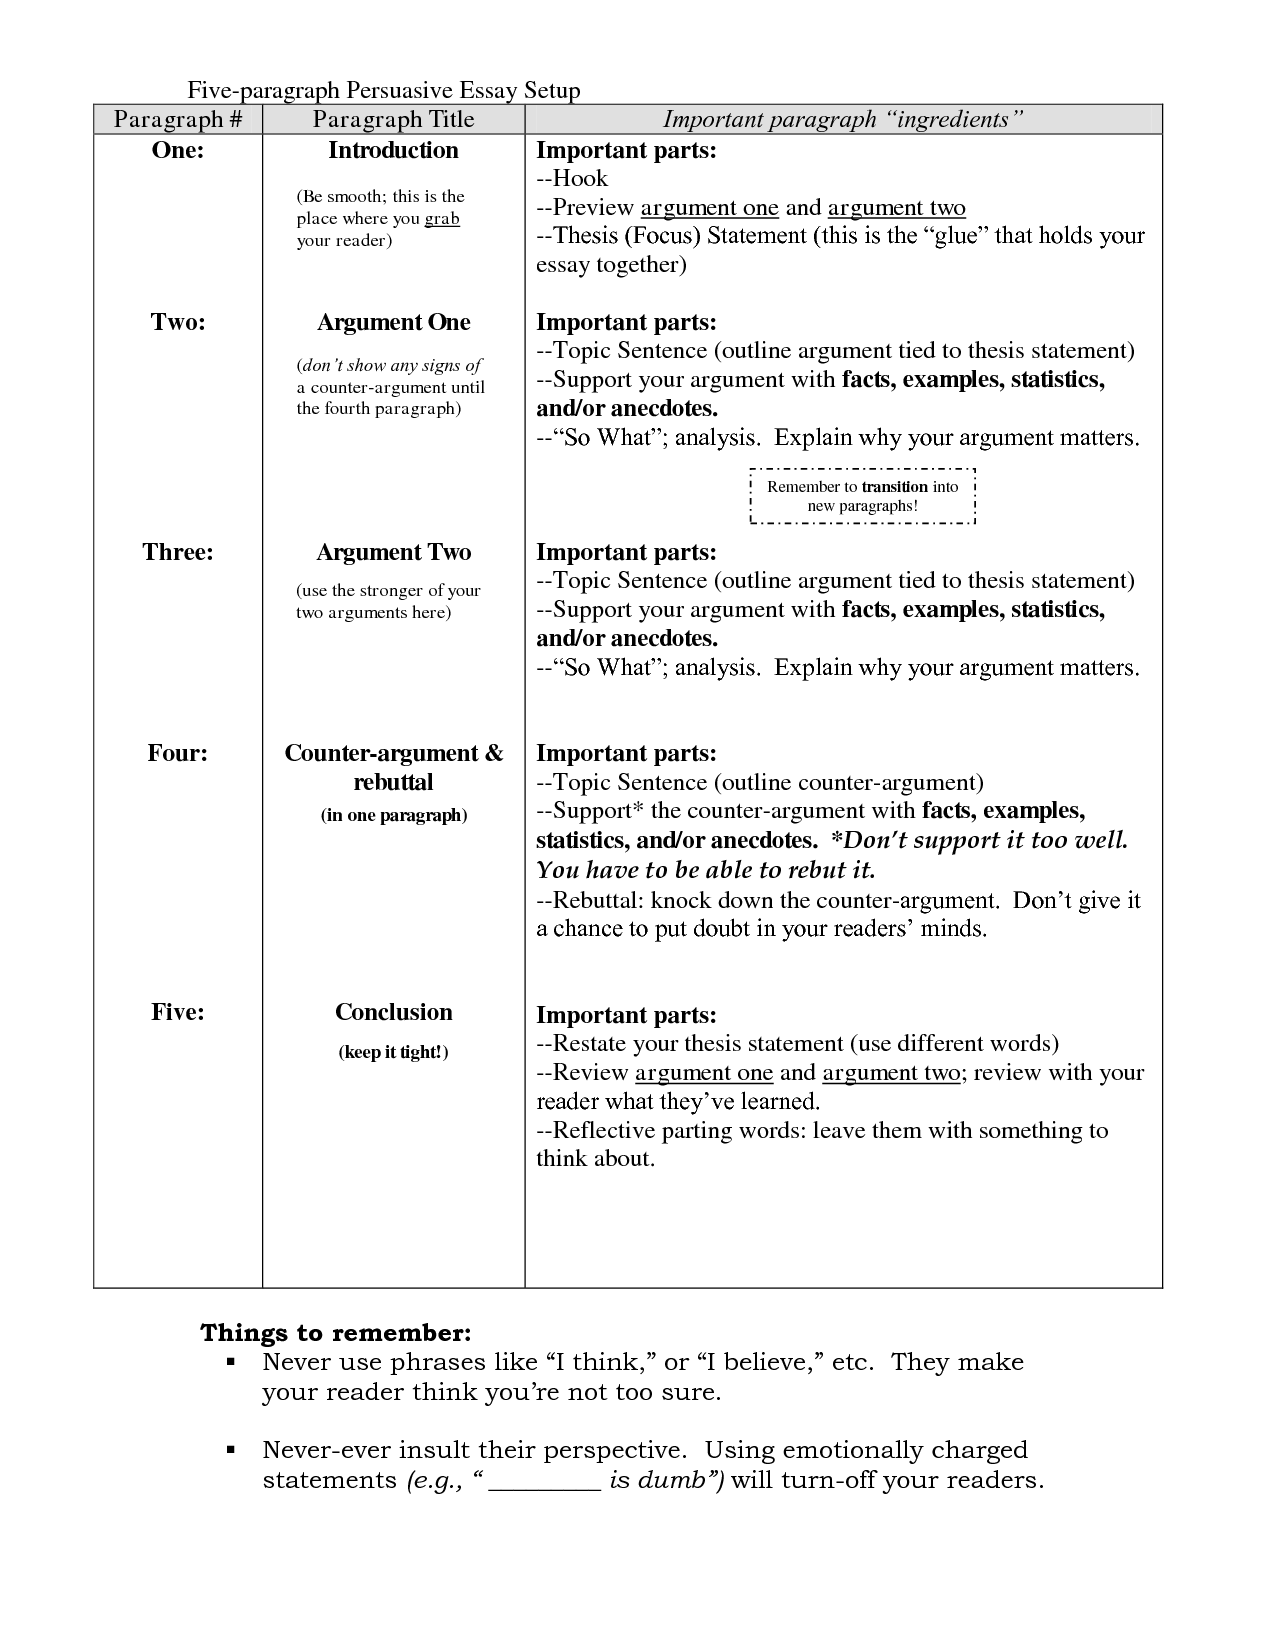 018 One Paragraph Essay How Important Is Thesis Statement In An To Write Introduction For Informative N5psytative About Book Pdf Yourself Examples Start Analytical Opinion End Staggering Argumentative Conclude And Conclusion Example Full